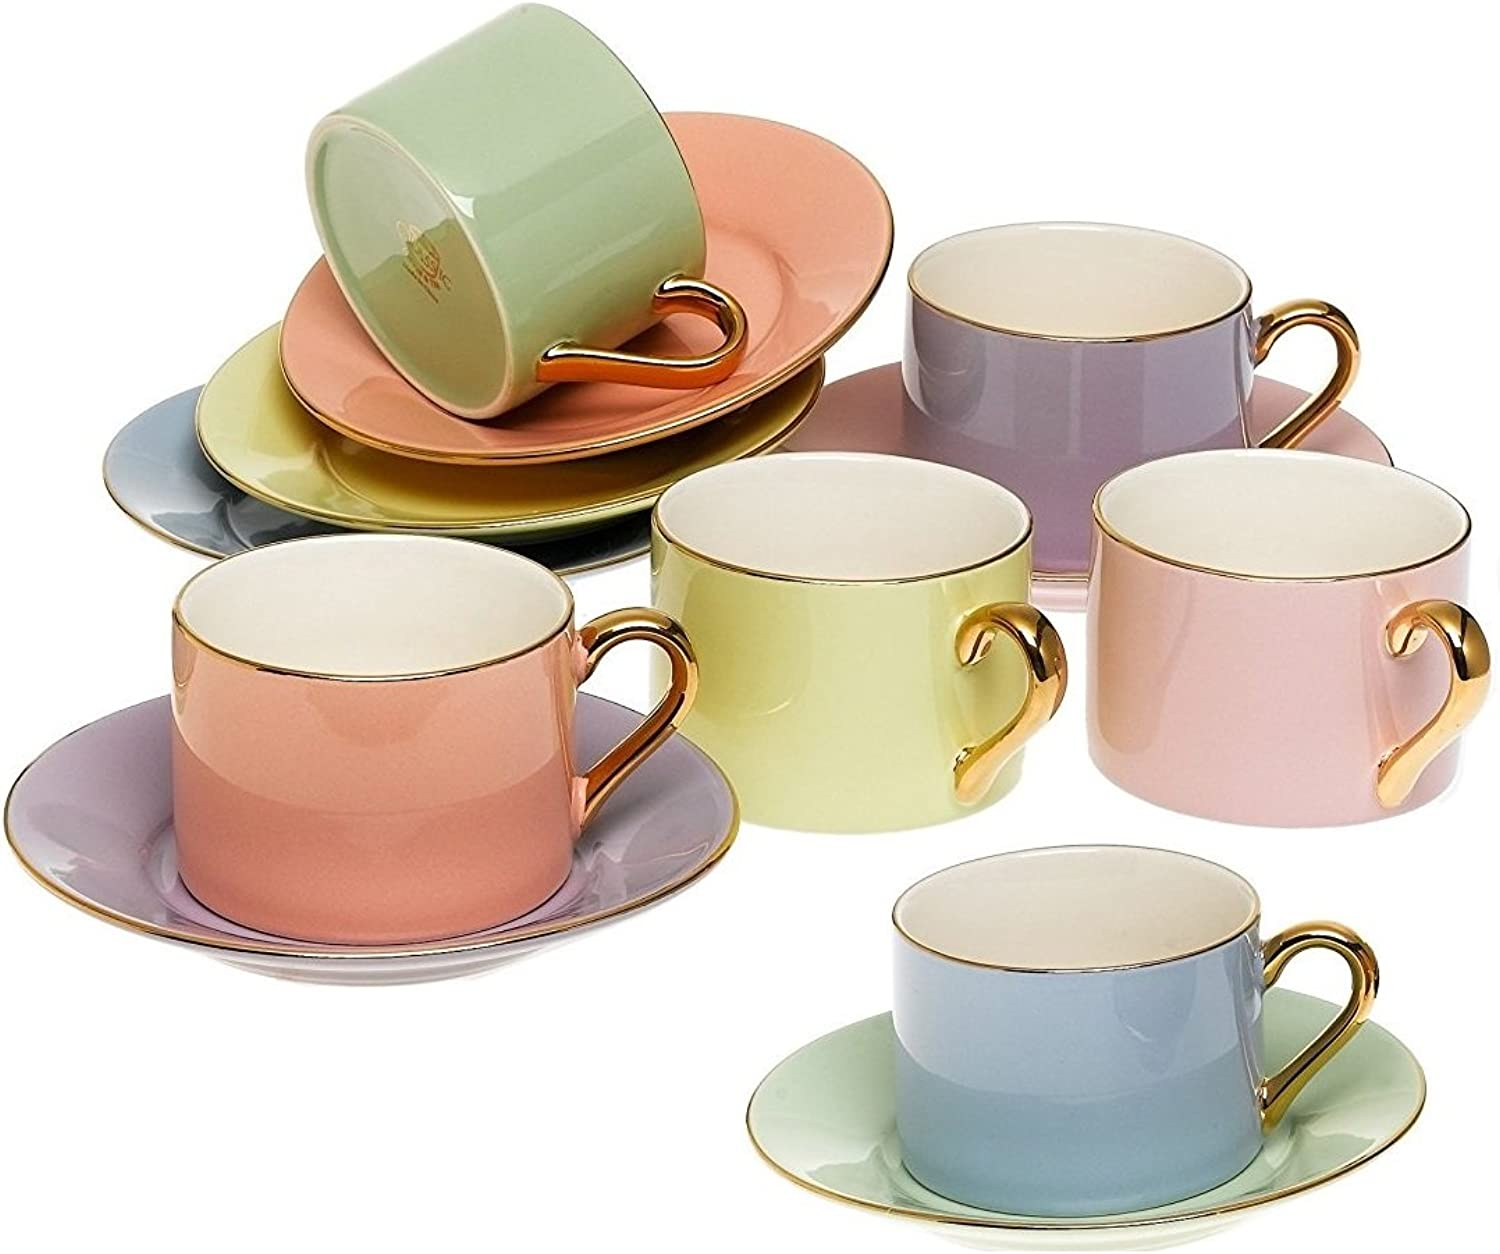 Yedi Houseware Classic Coffee and Tea Cups & Saucers Complete, Premium Quality Porcelain Set In Beautiful Pastel colors with gold Plated Rims & Handles Stunning Hostess Gift Idea 7oz  (Set of 6)